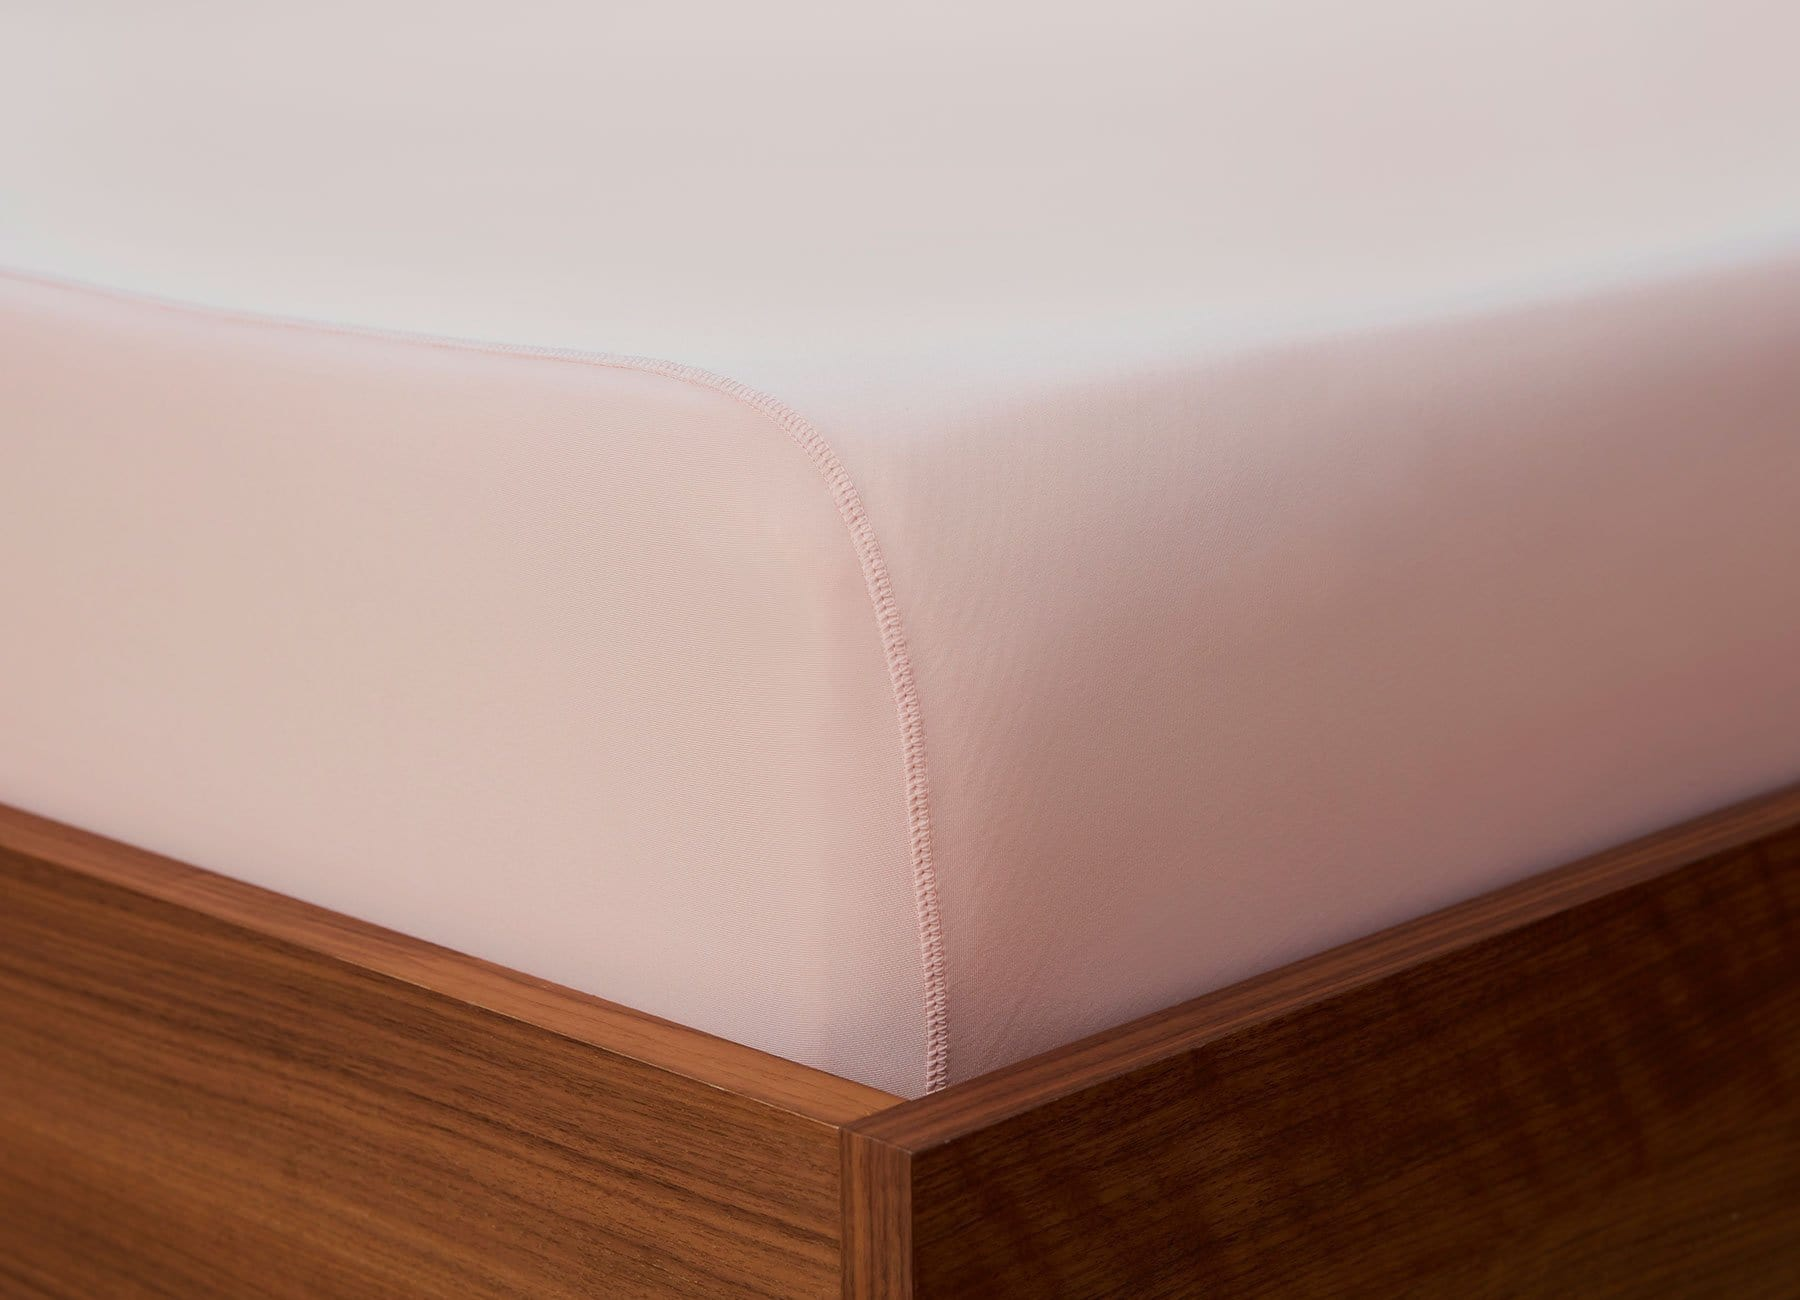 Original Performance Fitted Sheet on bed in Blush Pink #choose-your-color_blush-pink